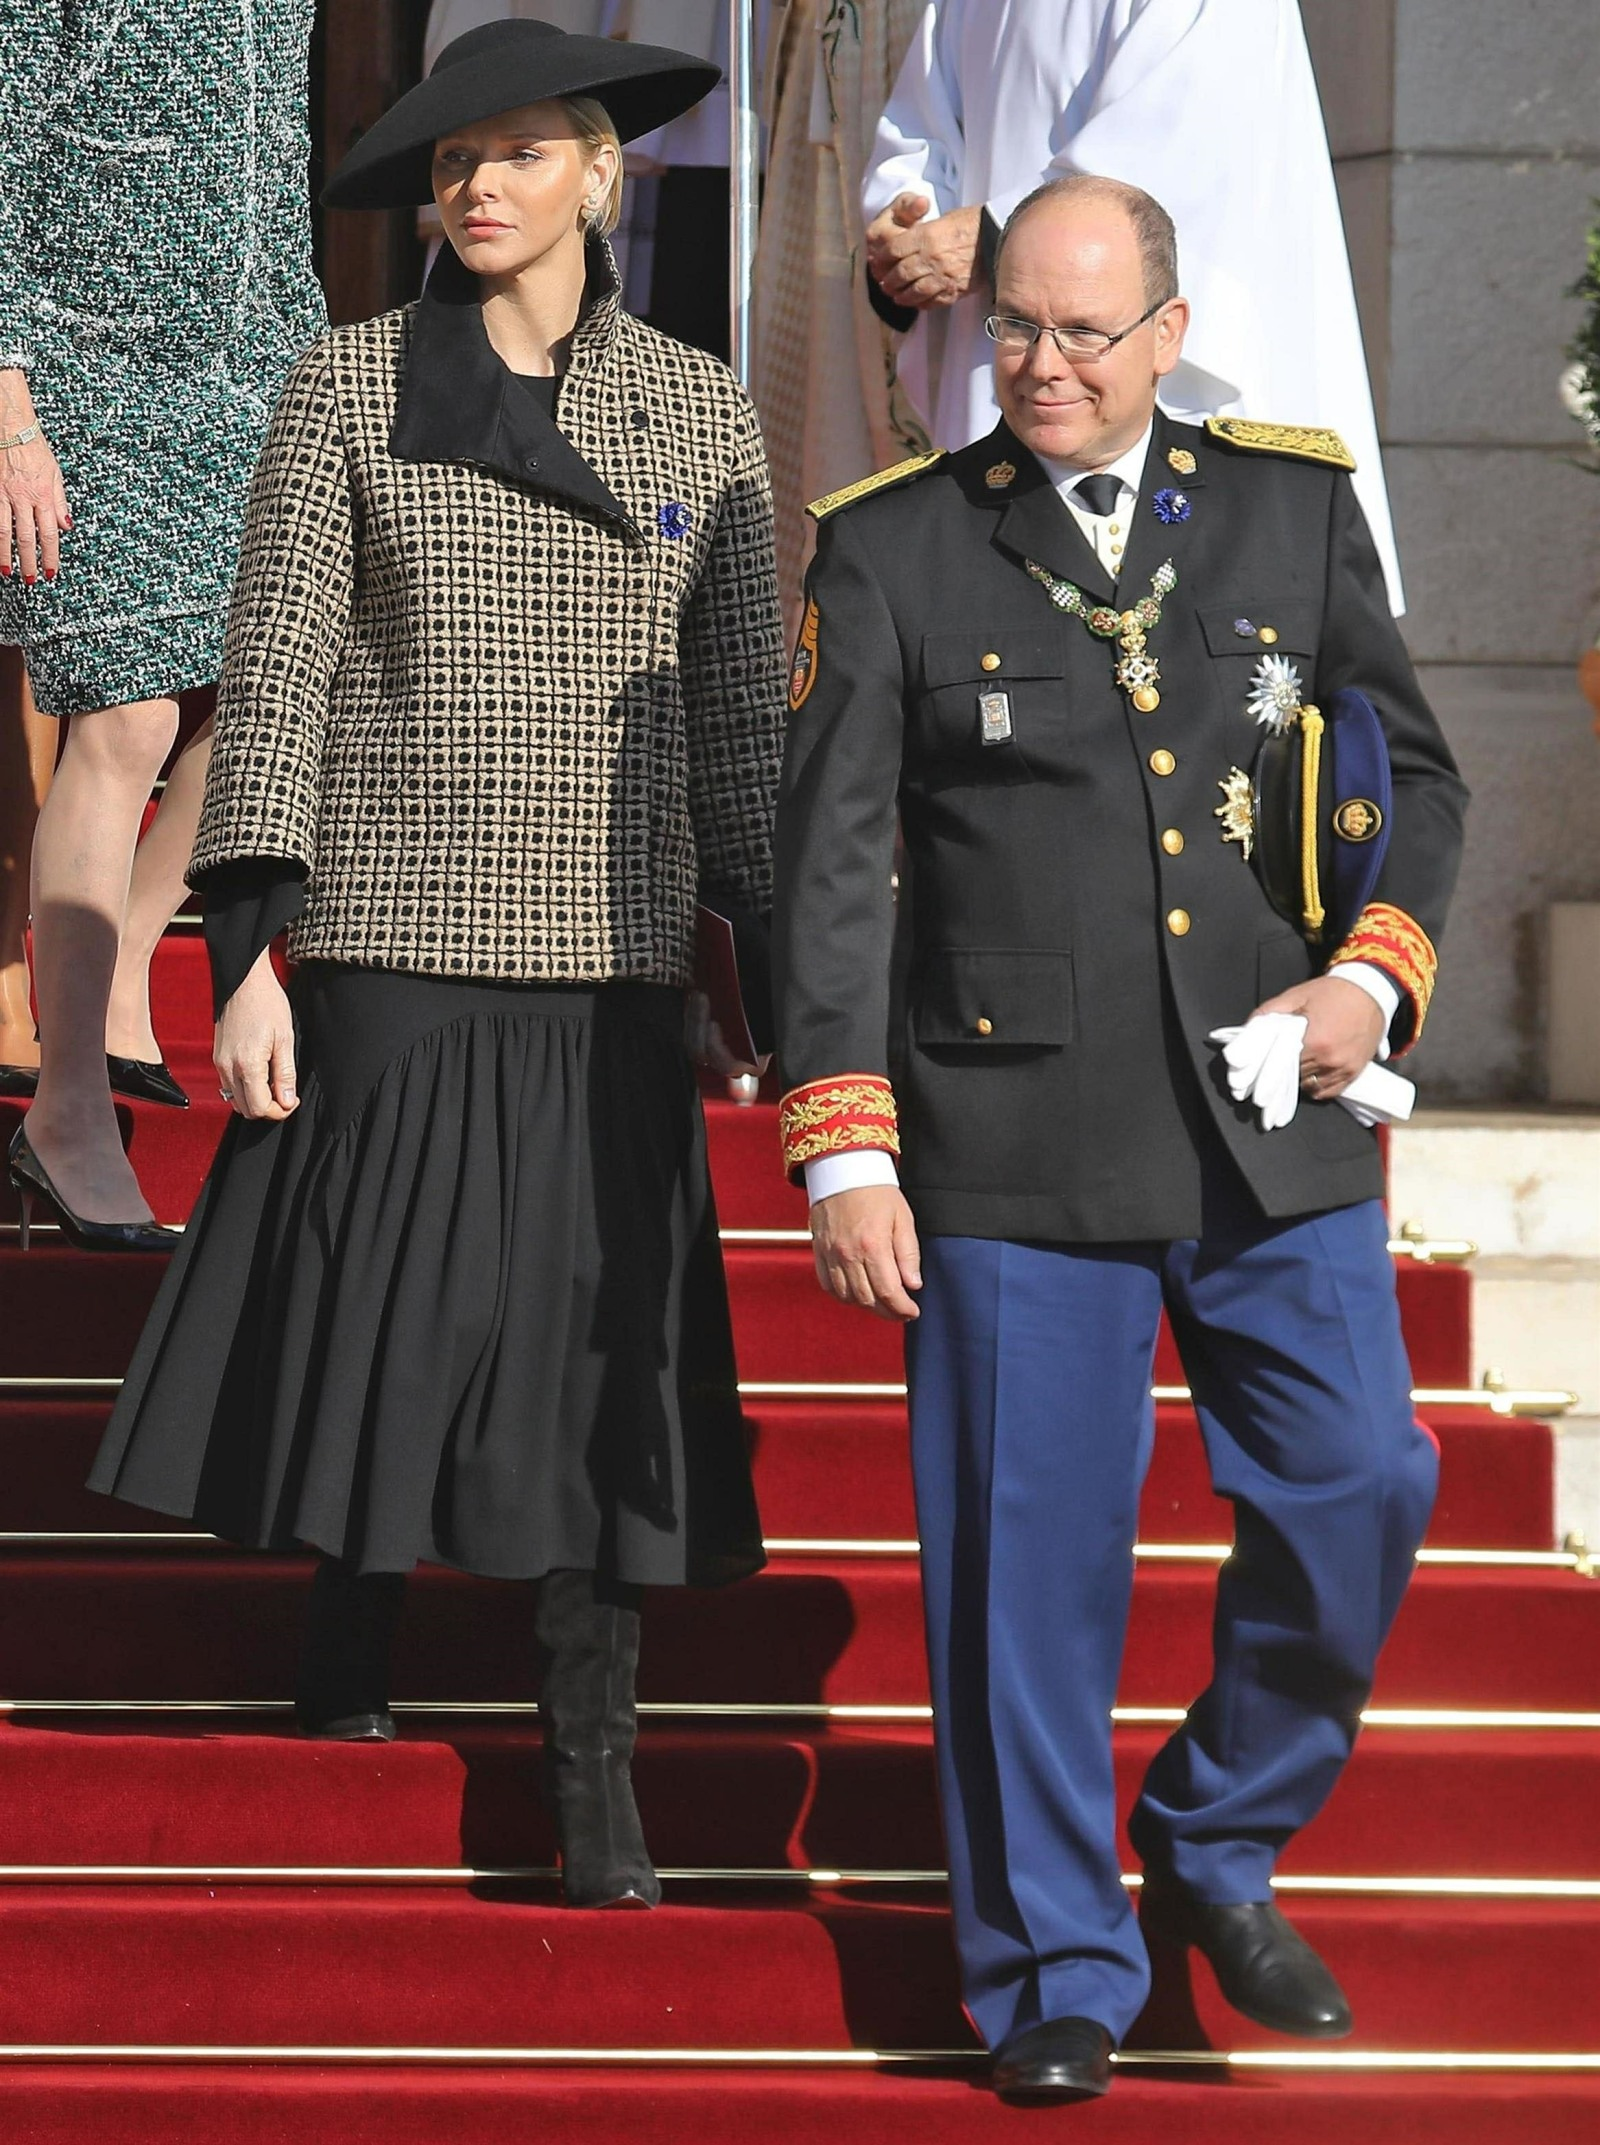 Royal family of Monaco leaving the Notre Dame Immaculee Cathedral during National Day